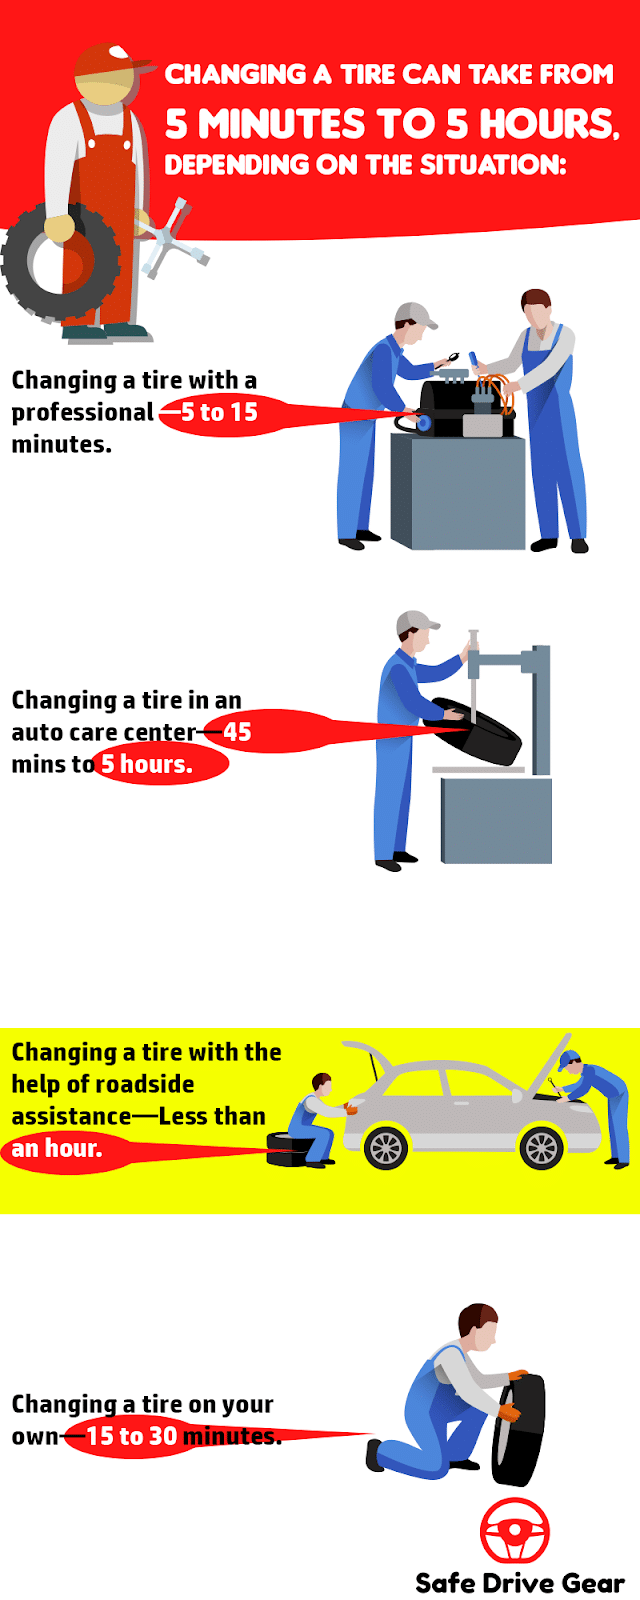 Does It Take to Change a Tire